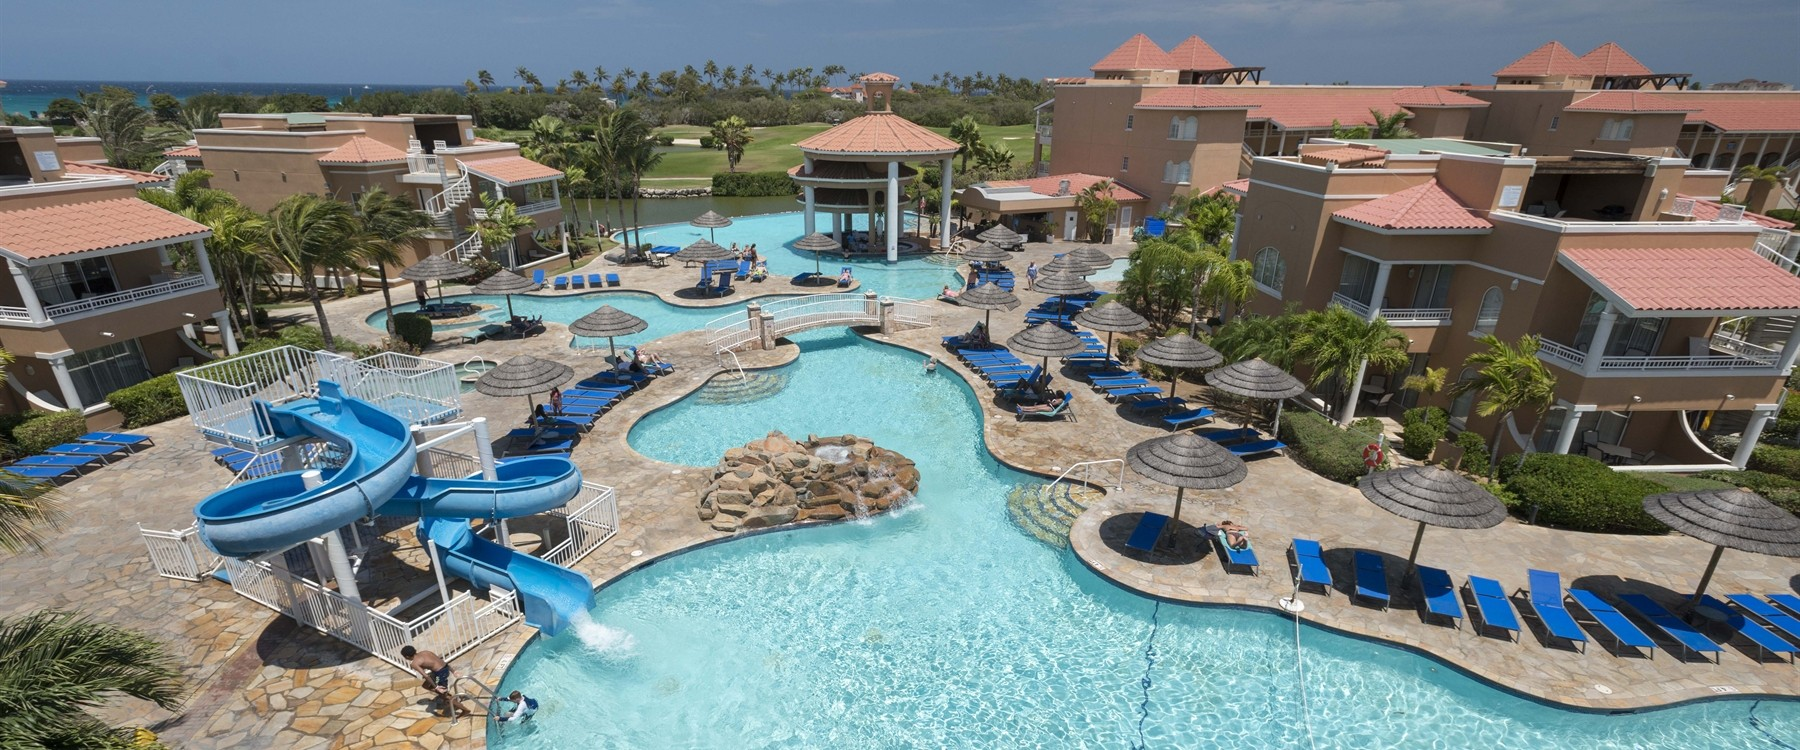 Divi village golf beach resort advantage international - Divi village golf and beach resort ...